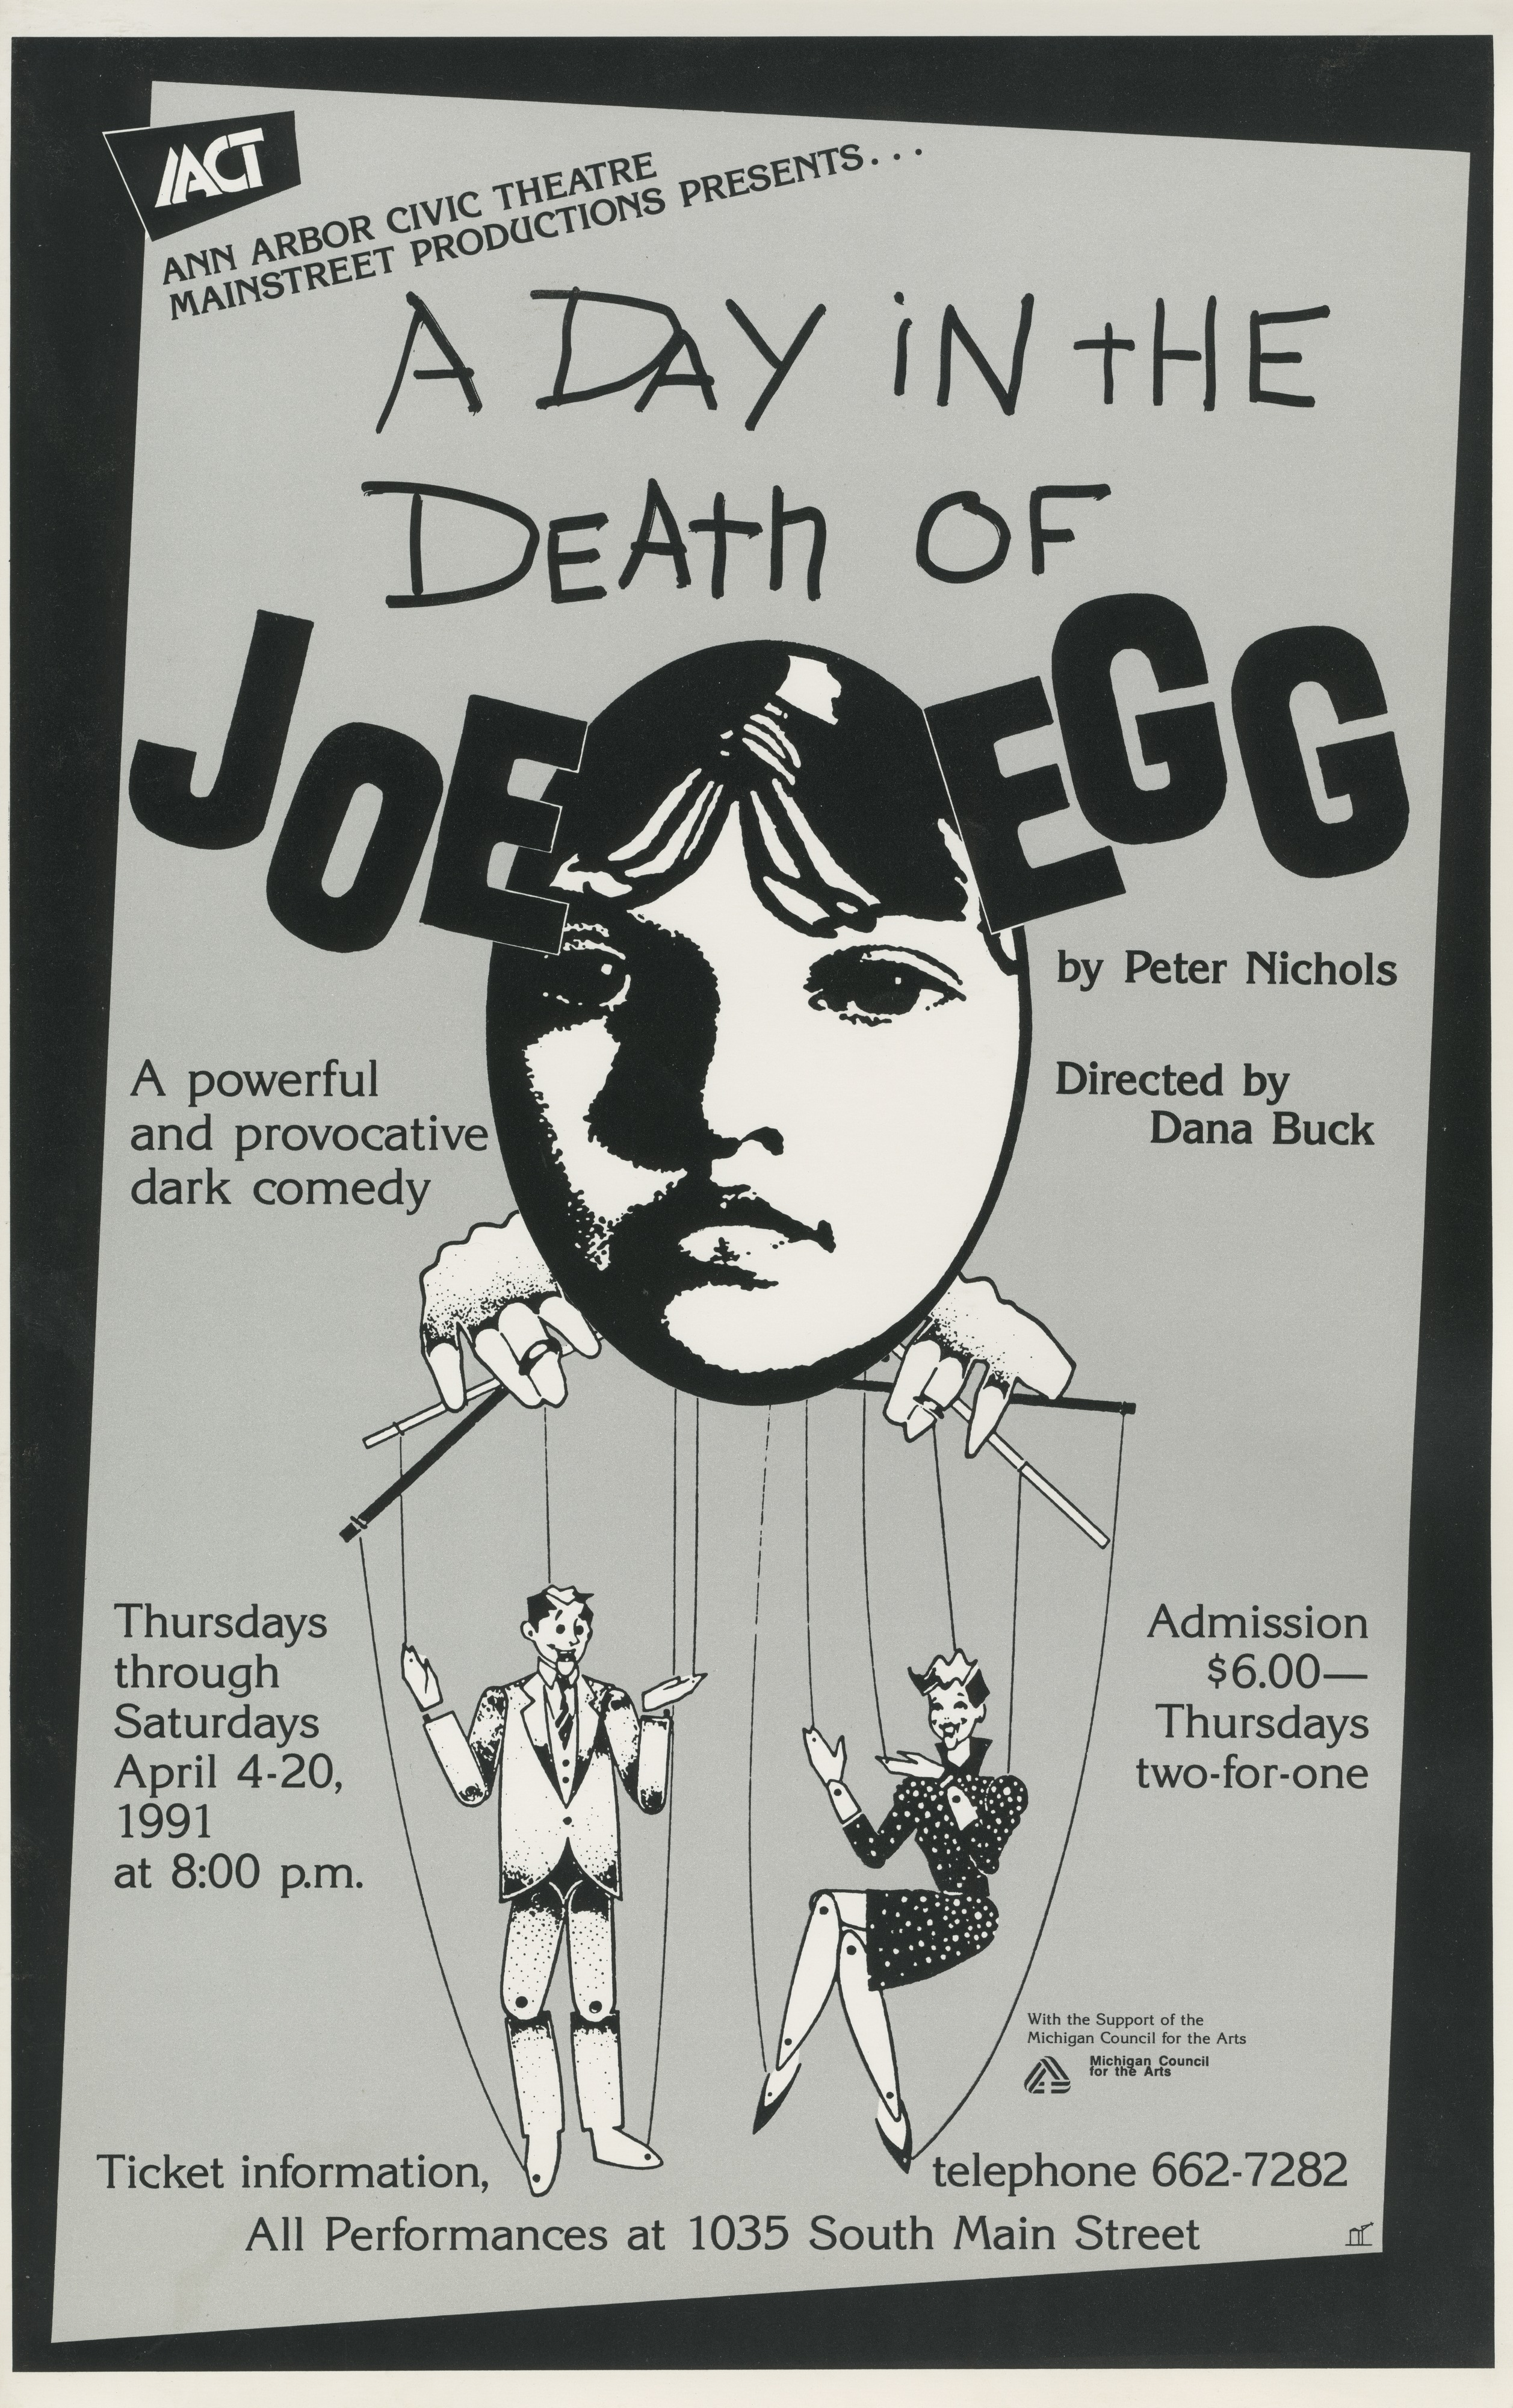 Ann Arbor Civic Theatre Poster: A Day in the Death of Joe Egg image